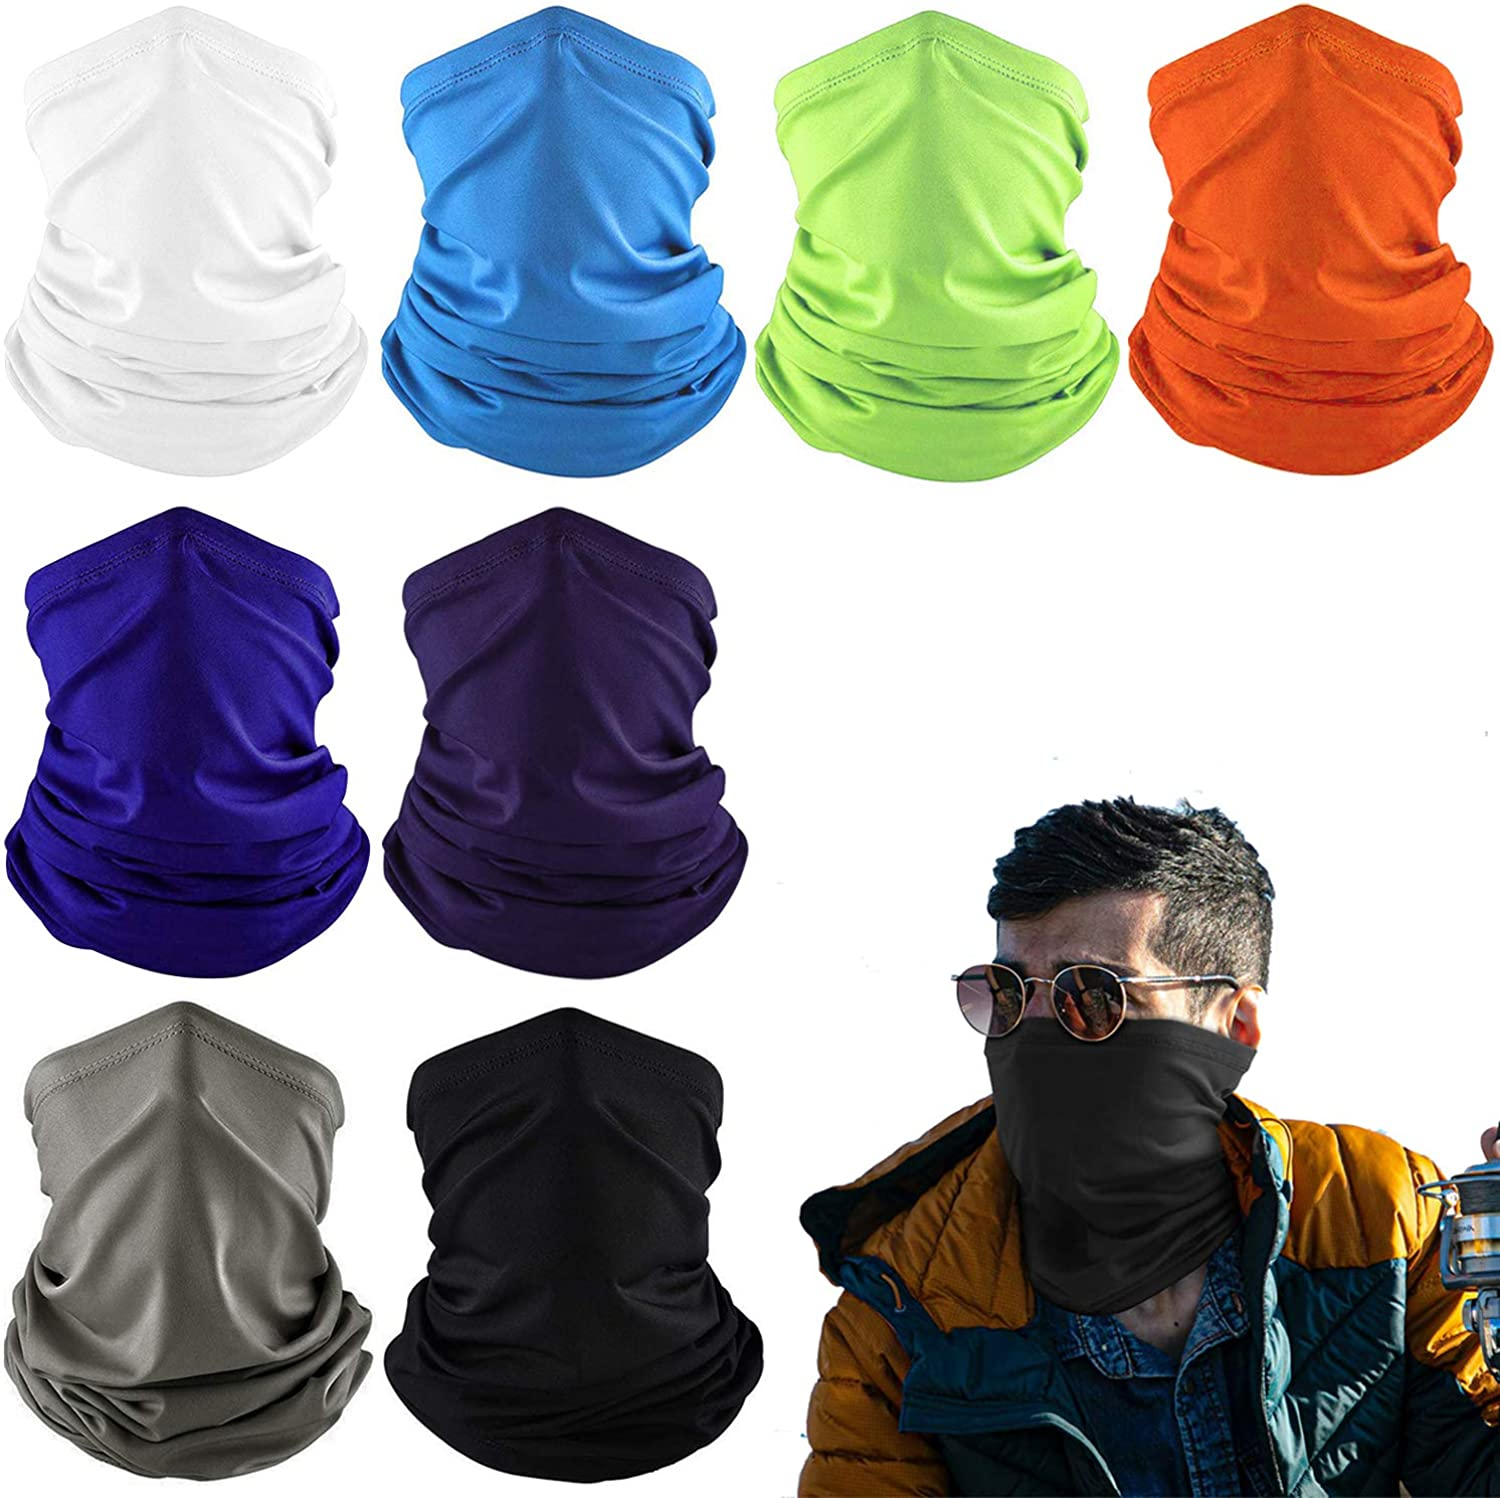 Cooling Neck Gaiters for Men Summer Lightweight Face Covering UV Protection